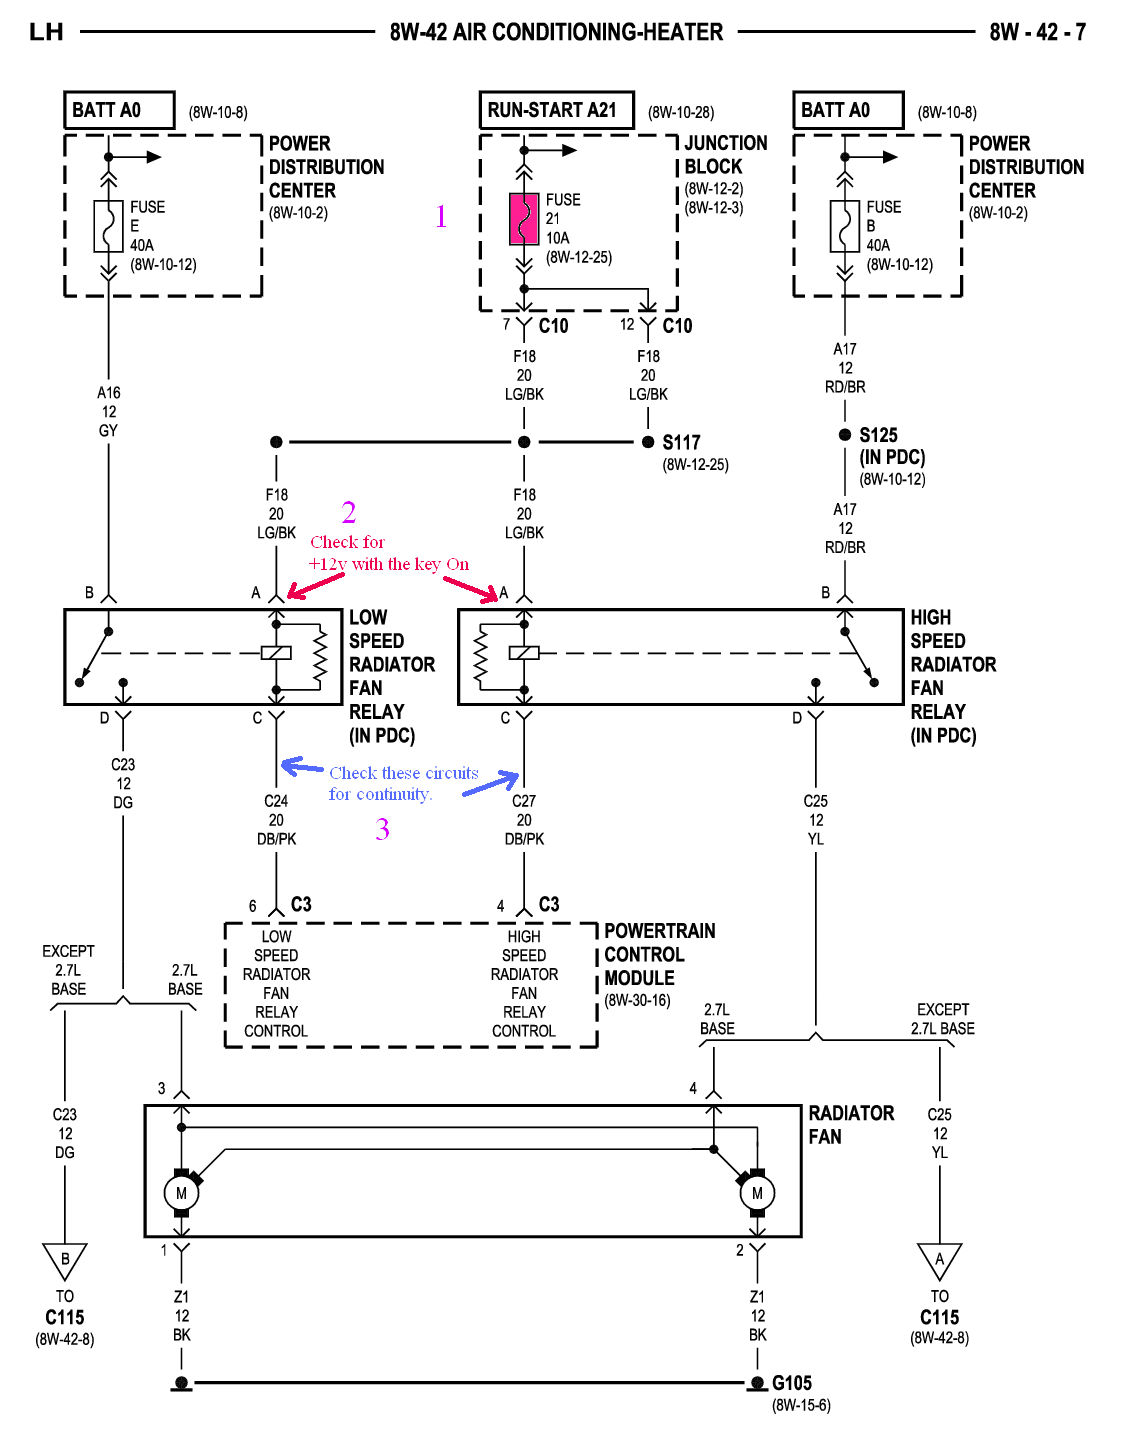 2002 concorde wiring diagram wiring diagram todays95 chrysler concorde fuse diagram golden schematic concorde silhouette 2002 concorde wiring diagram